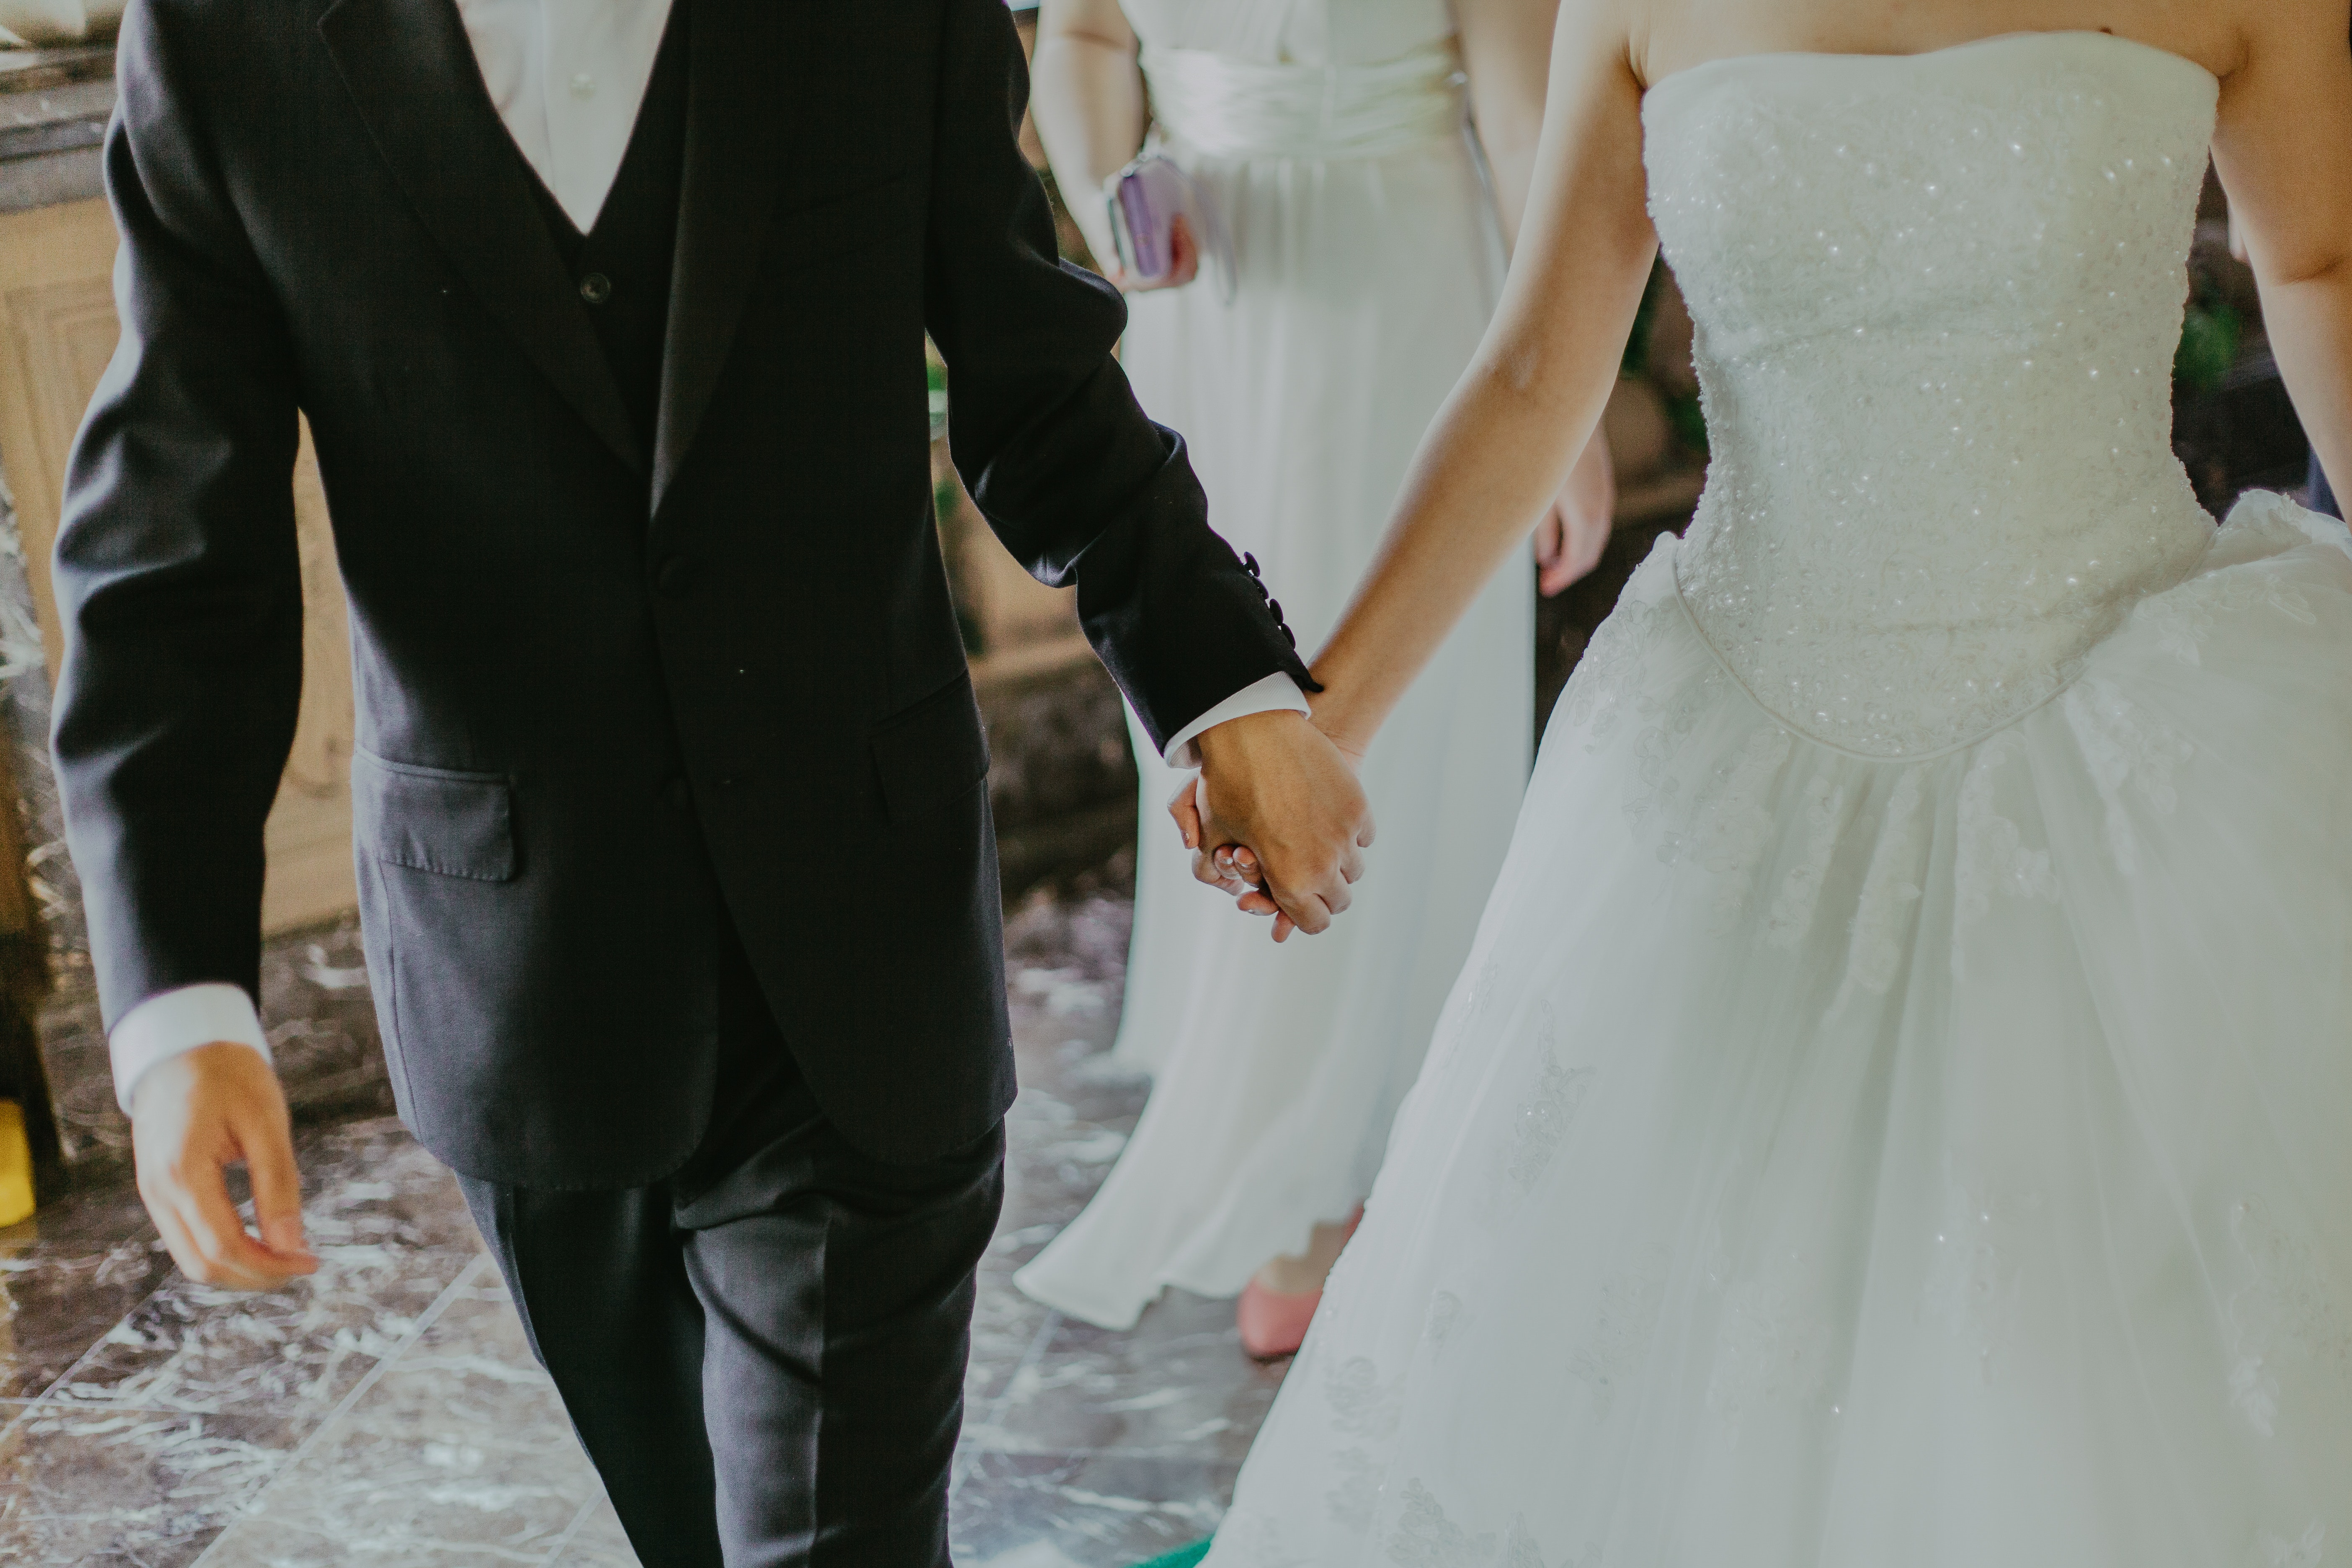 Woman Wearing White Wedding Gown Holding Hands With Man While Walking Free Stock Photo